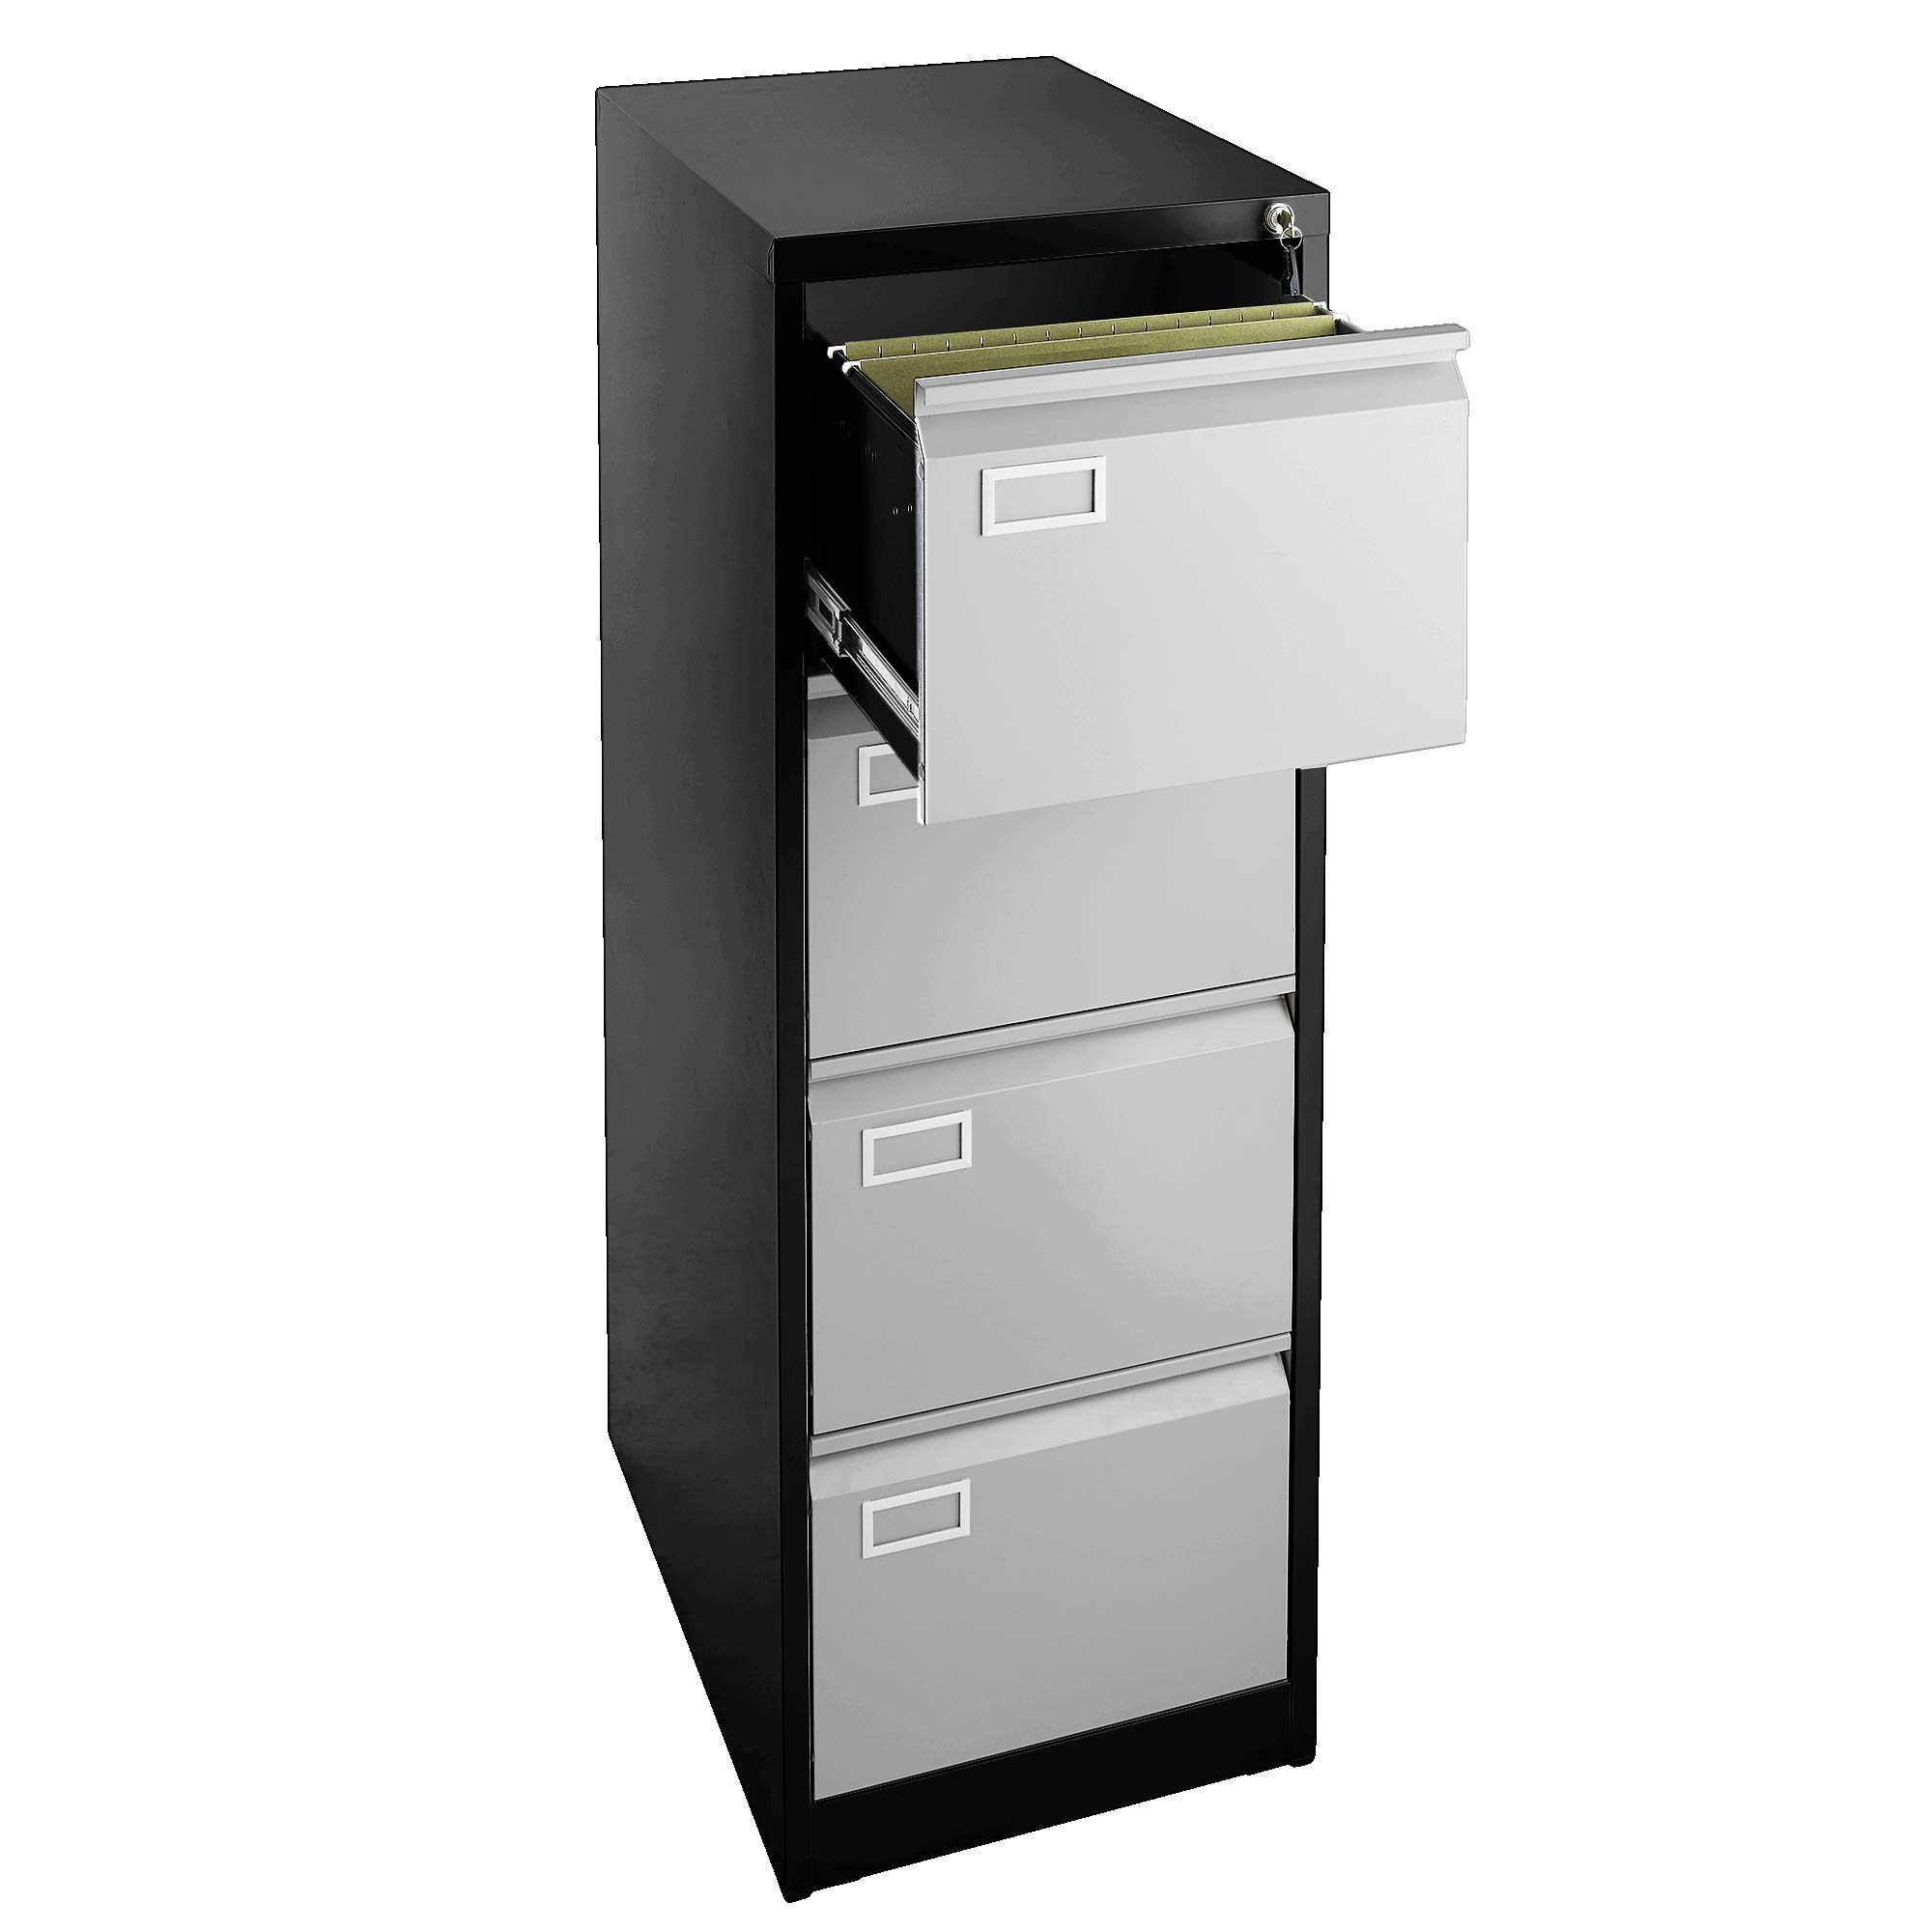 4 Drawer Locking Metal Filing Cabinet, Fits Letter & Legal Files, Great for Office (Black/Grey) - UNASSEMBLED